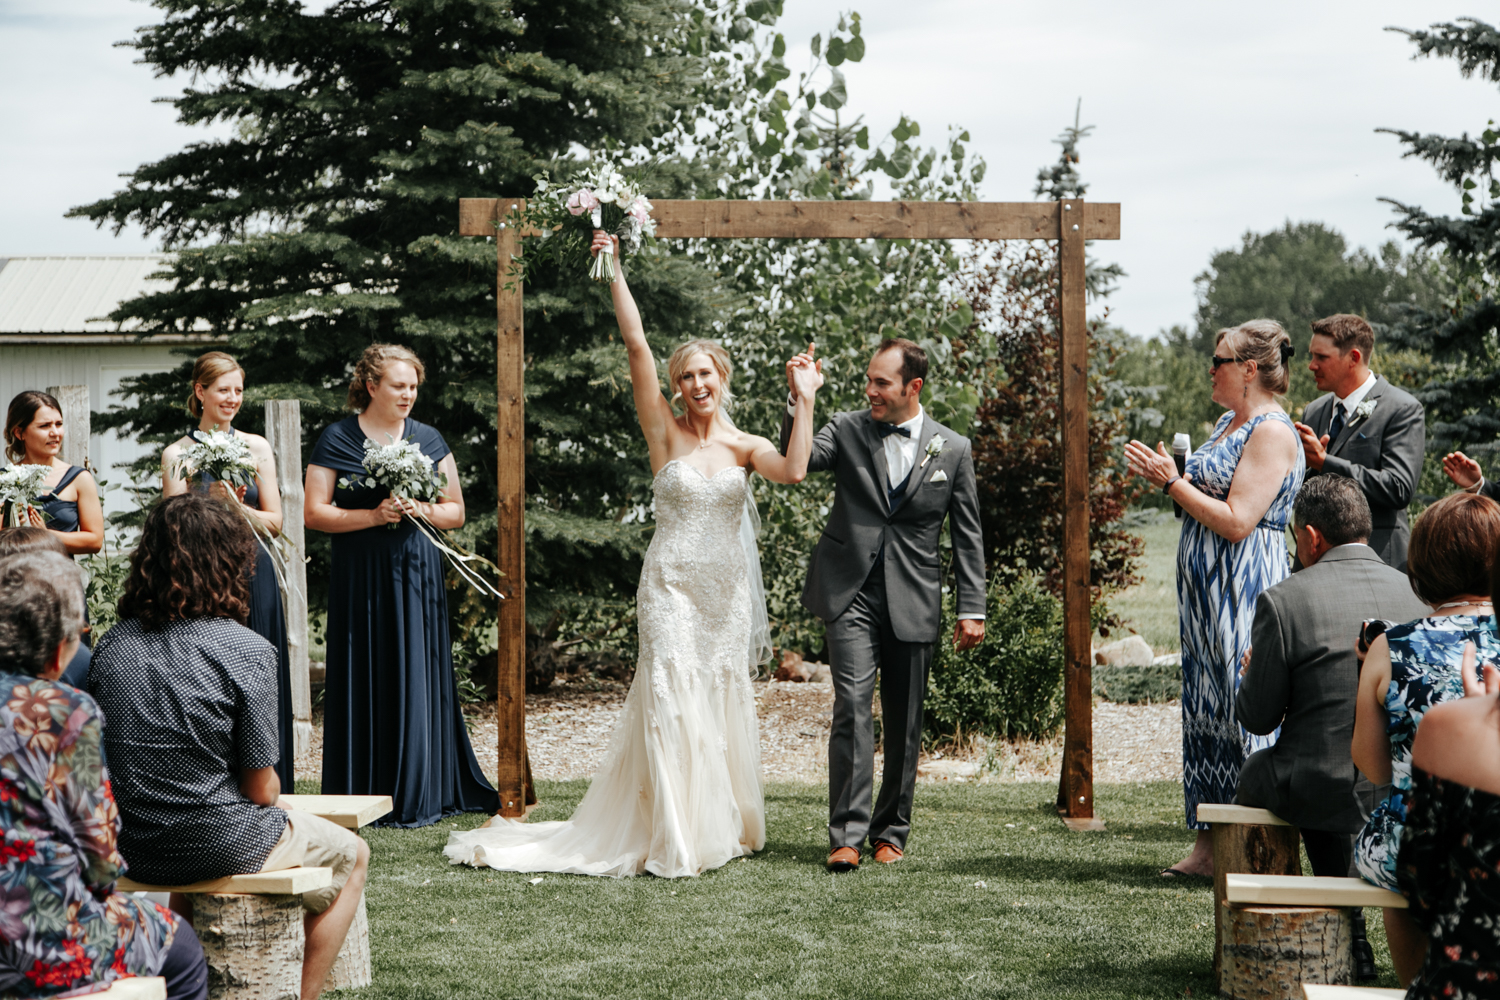 lethbridge-photographer-readymade-community-centre-wedding-coaldale-bailey-joel-picture-image-photo-27.jpg